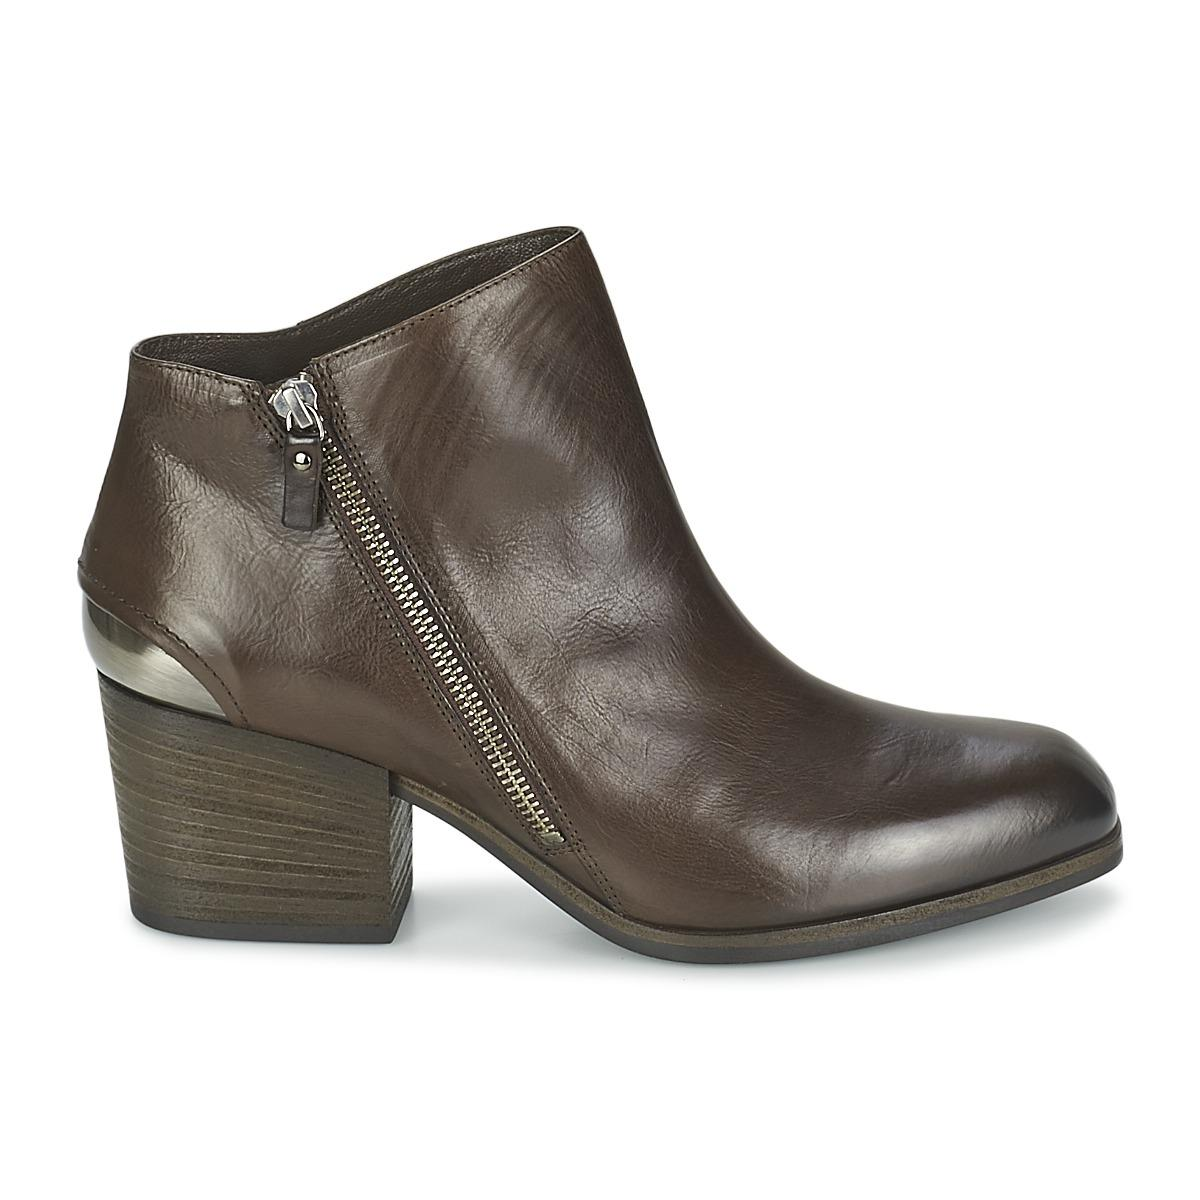 Vic Matié Assinou Low Boots in Brown